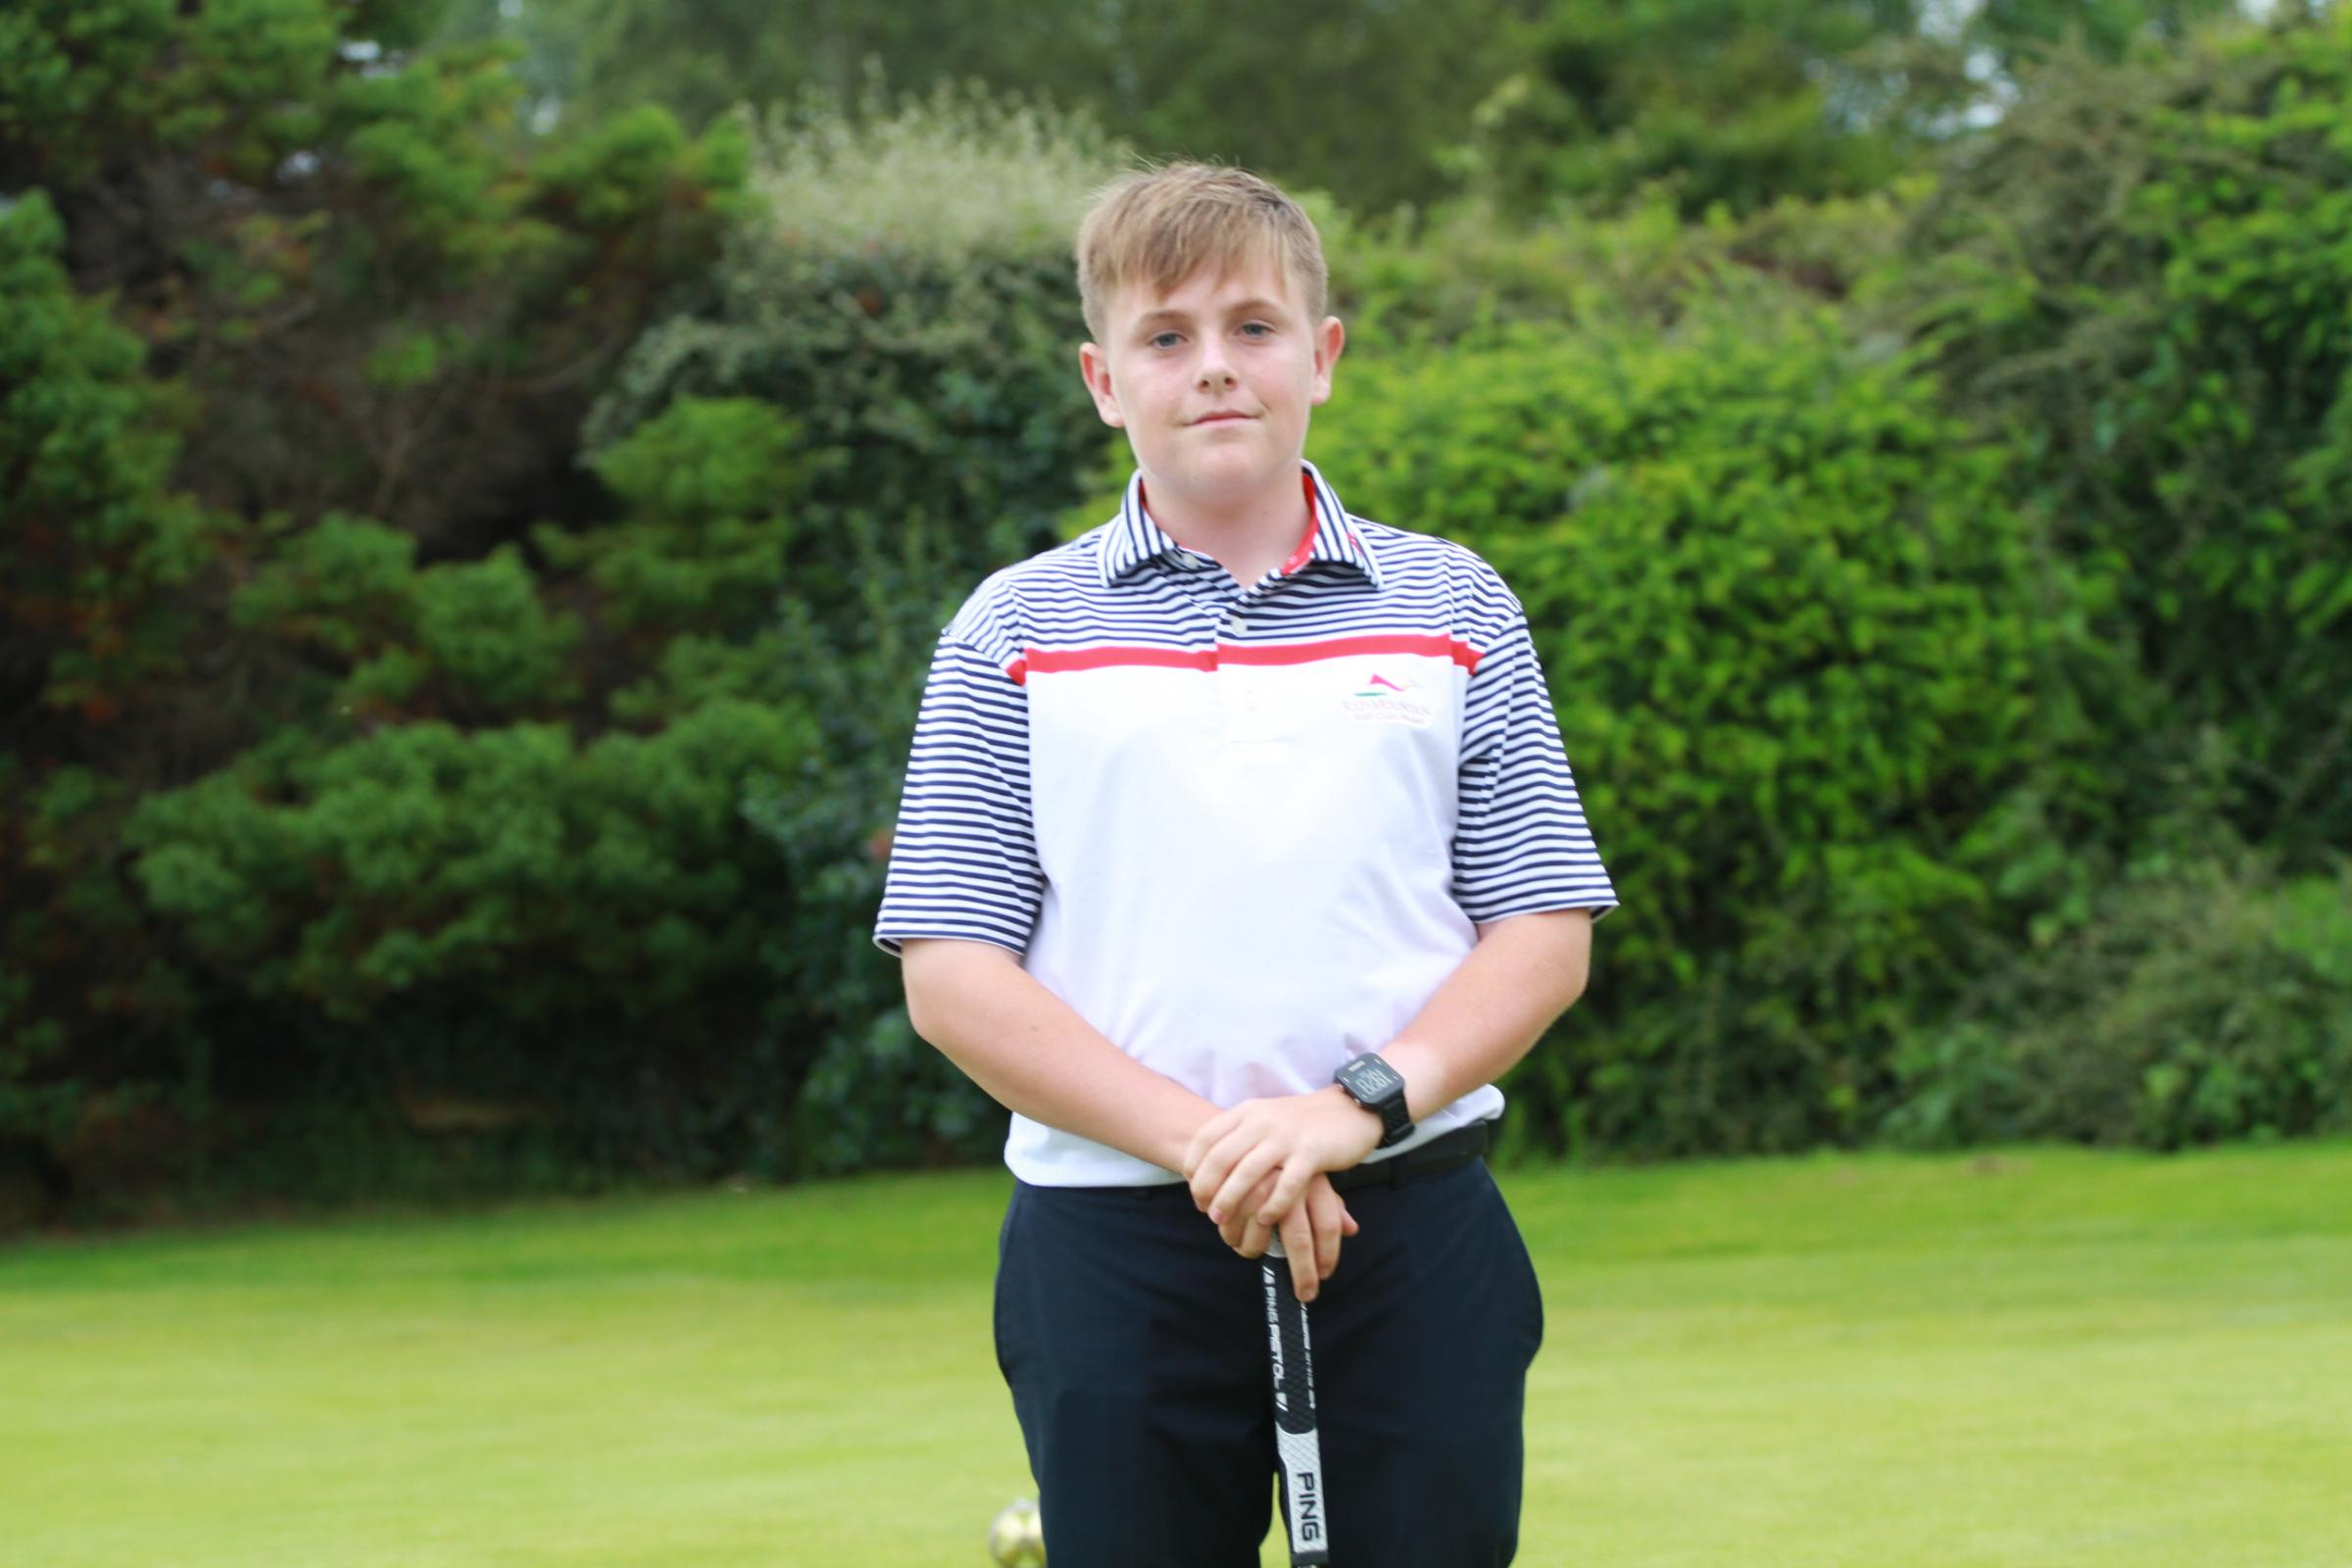 Freddie Titcombe has been selected to represent the South West of England